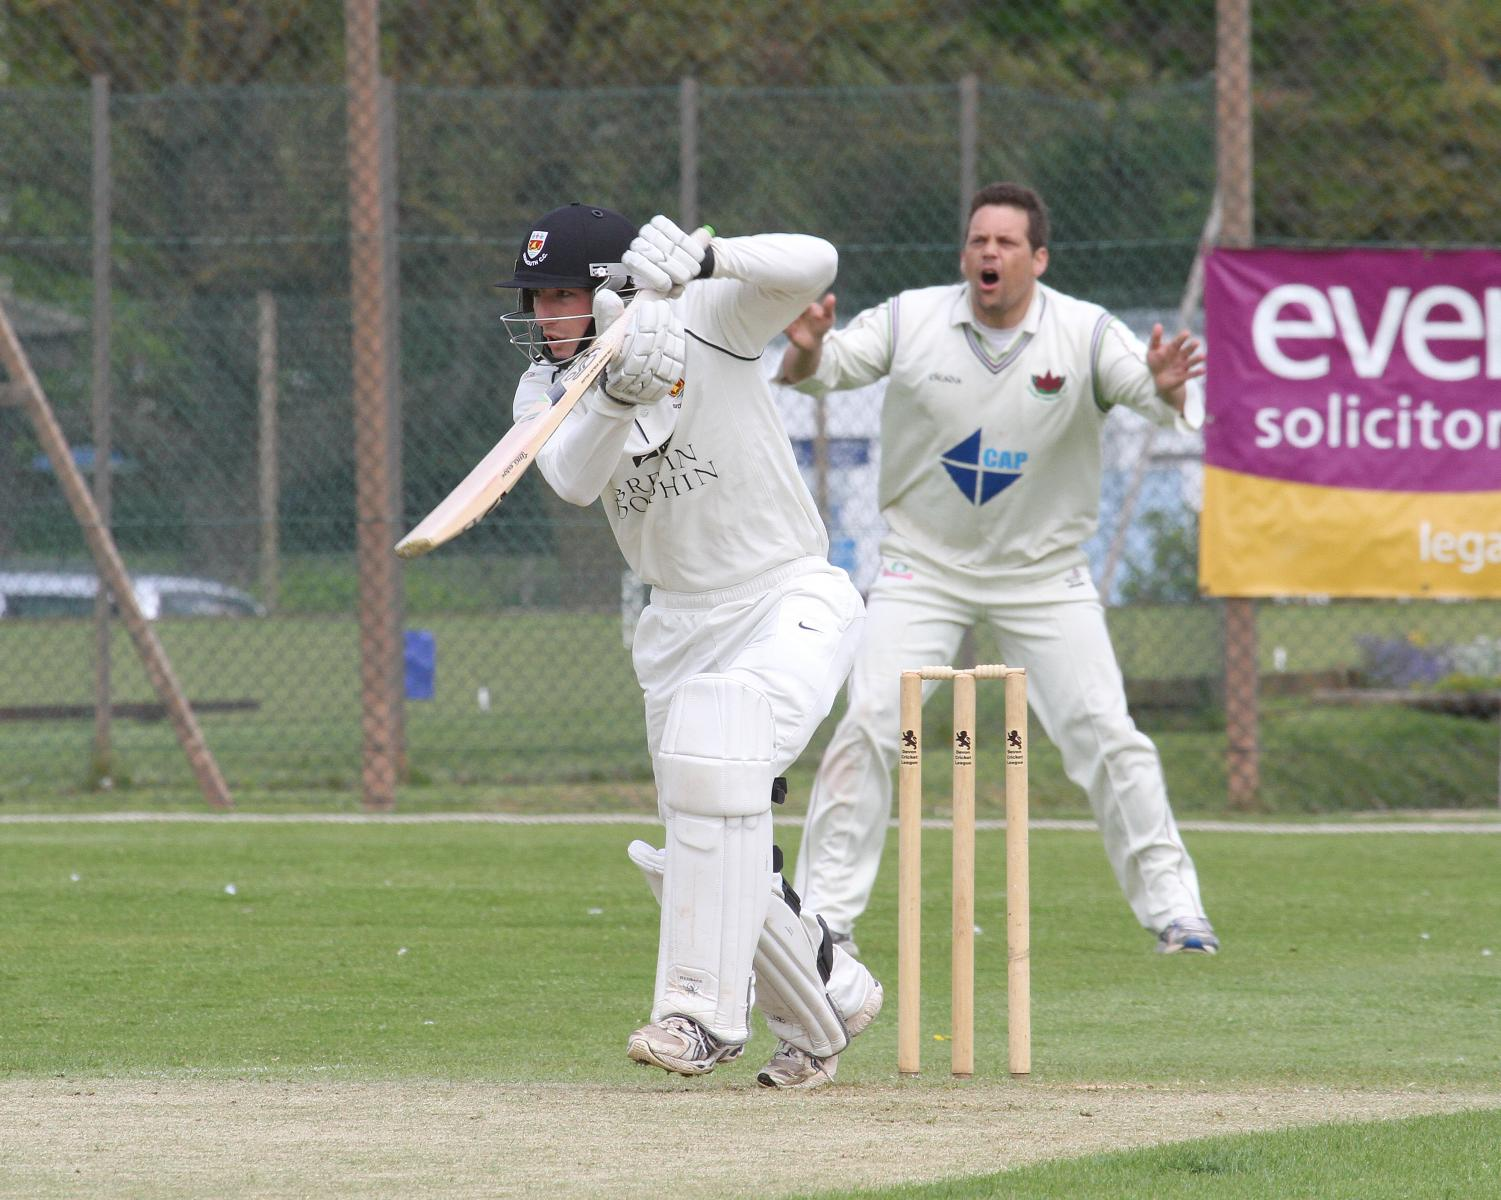 Sidmouth skipper Luke Bess watched from slip by Exmouth oppo Richard Baggs